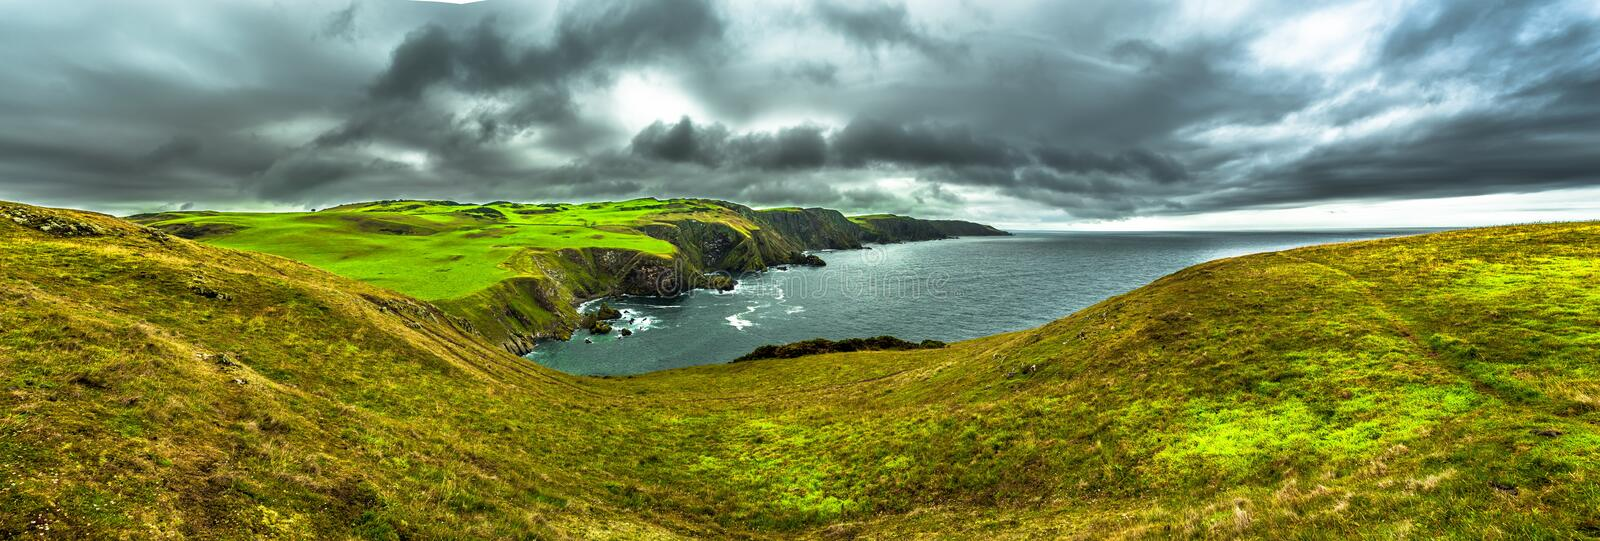 Spectacular Atlantik Coast And Cliffs At St. Abbs Head in Scotland.  royalty free stock image